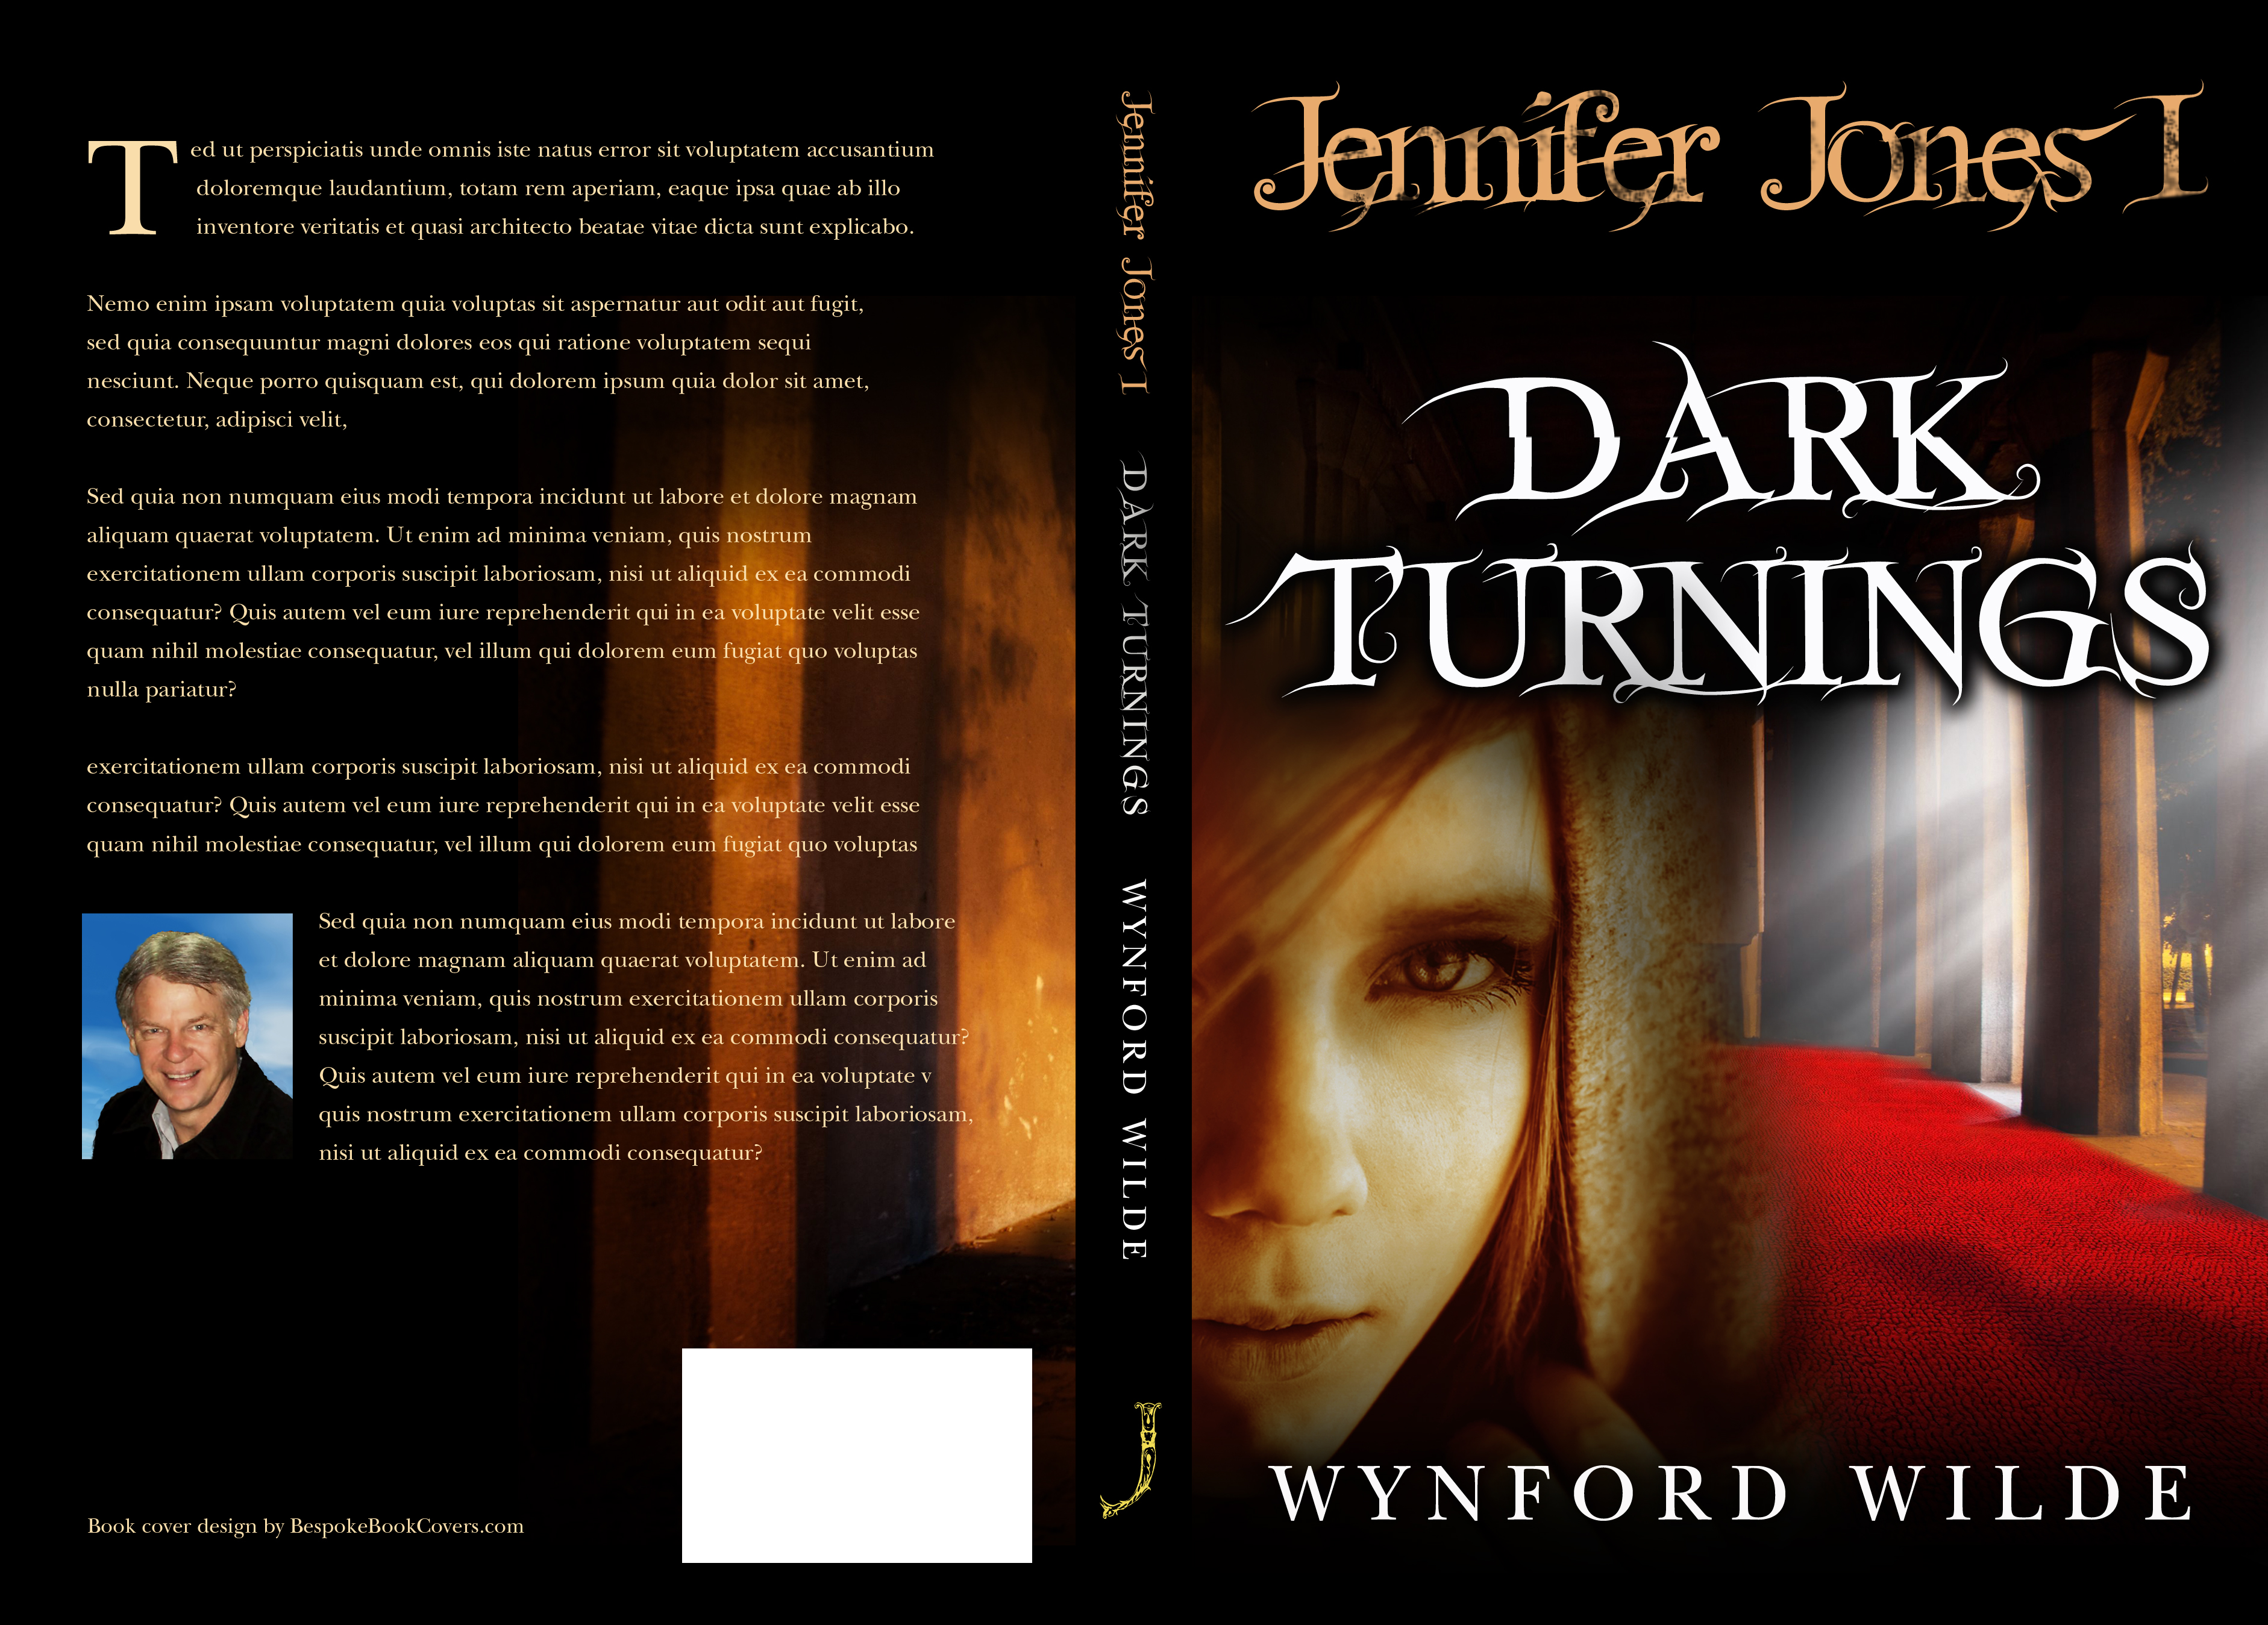 dark turnings book cover